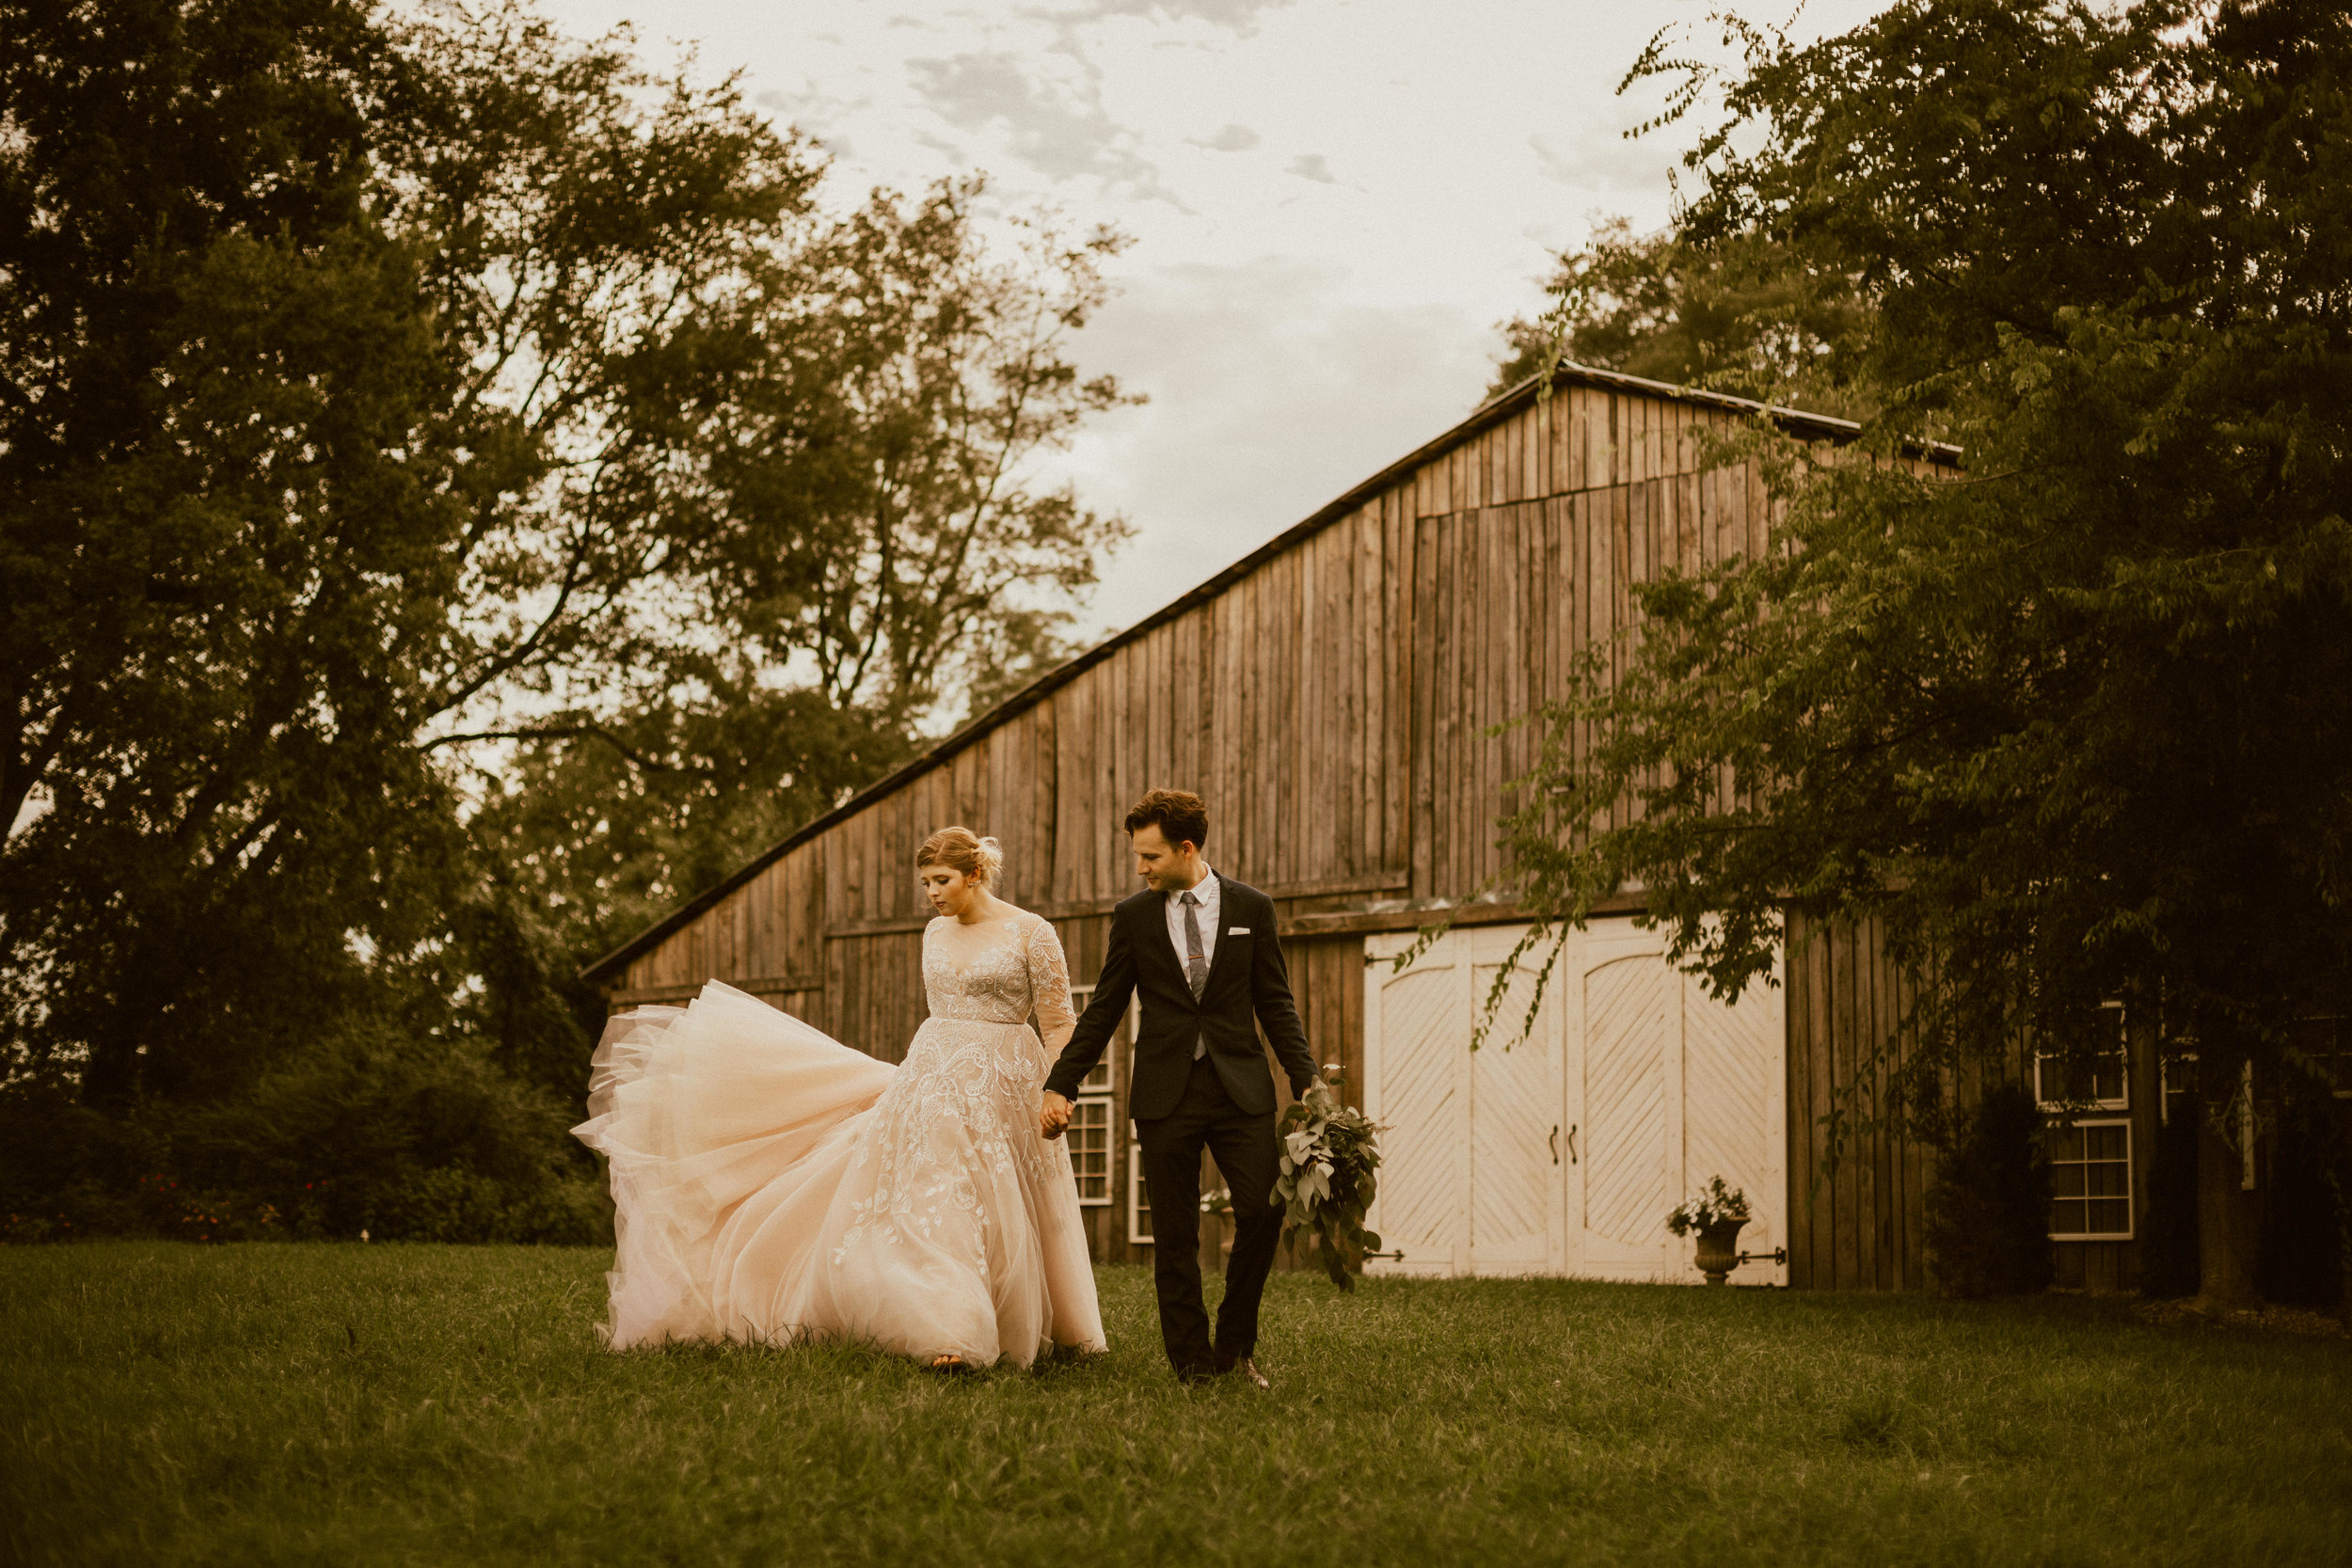 Nashville Wedding Photography by Saul Cervantes Photography-24.jpg